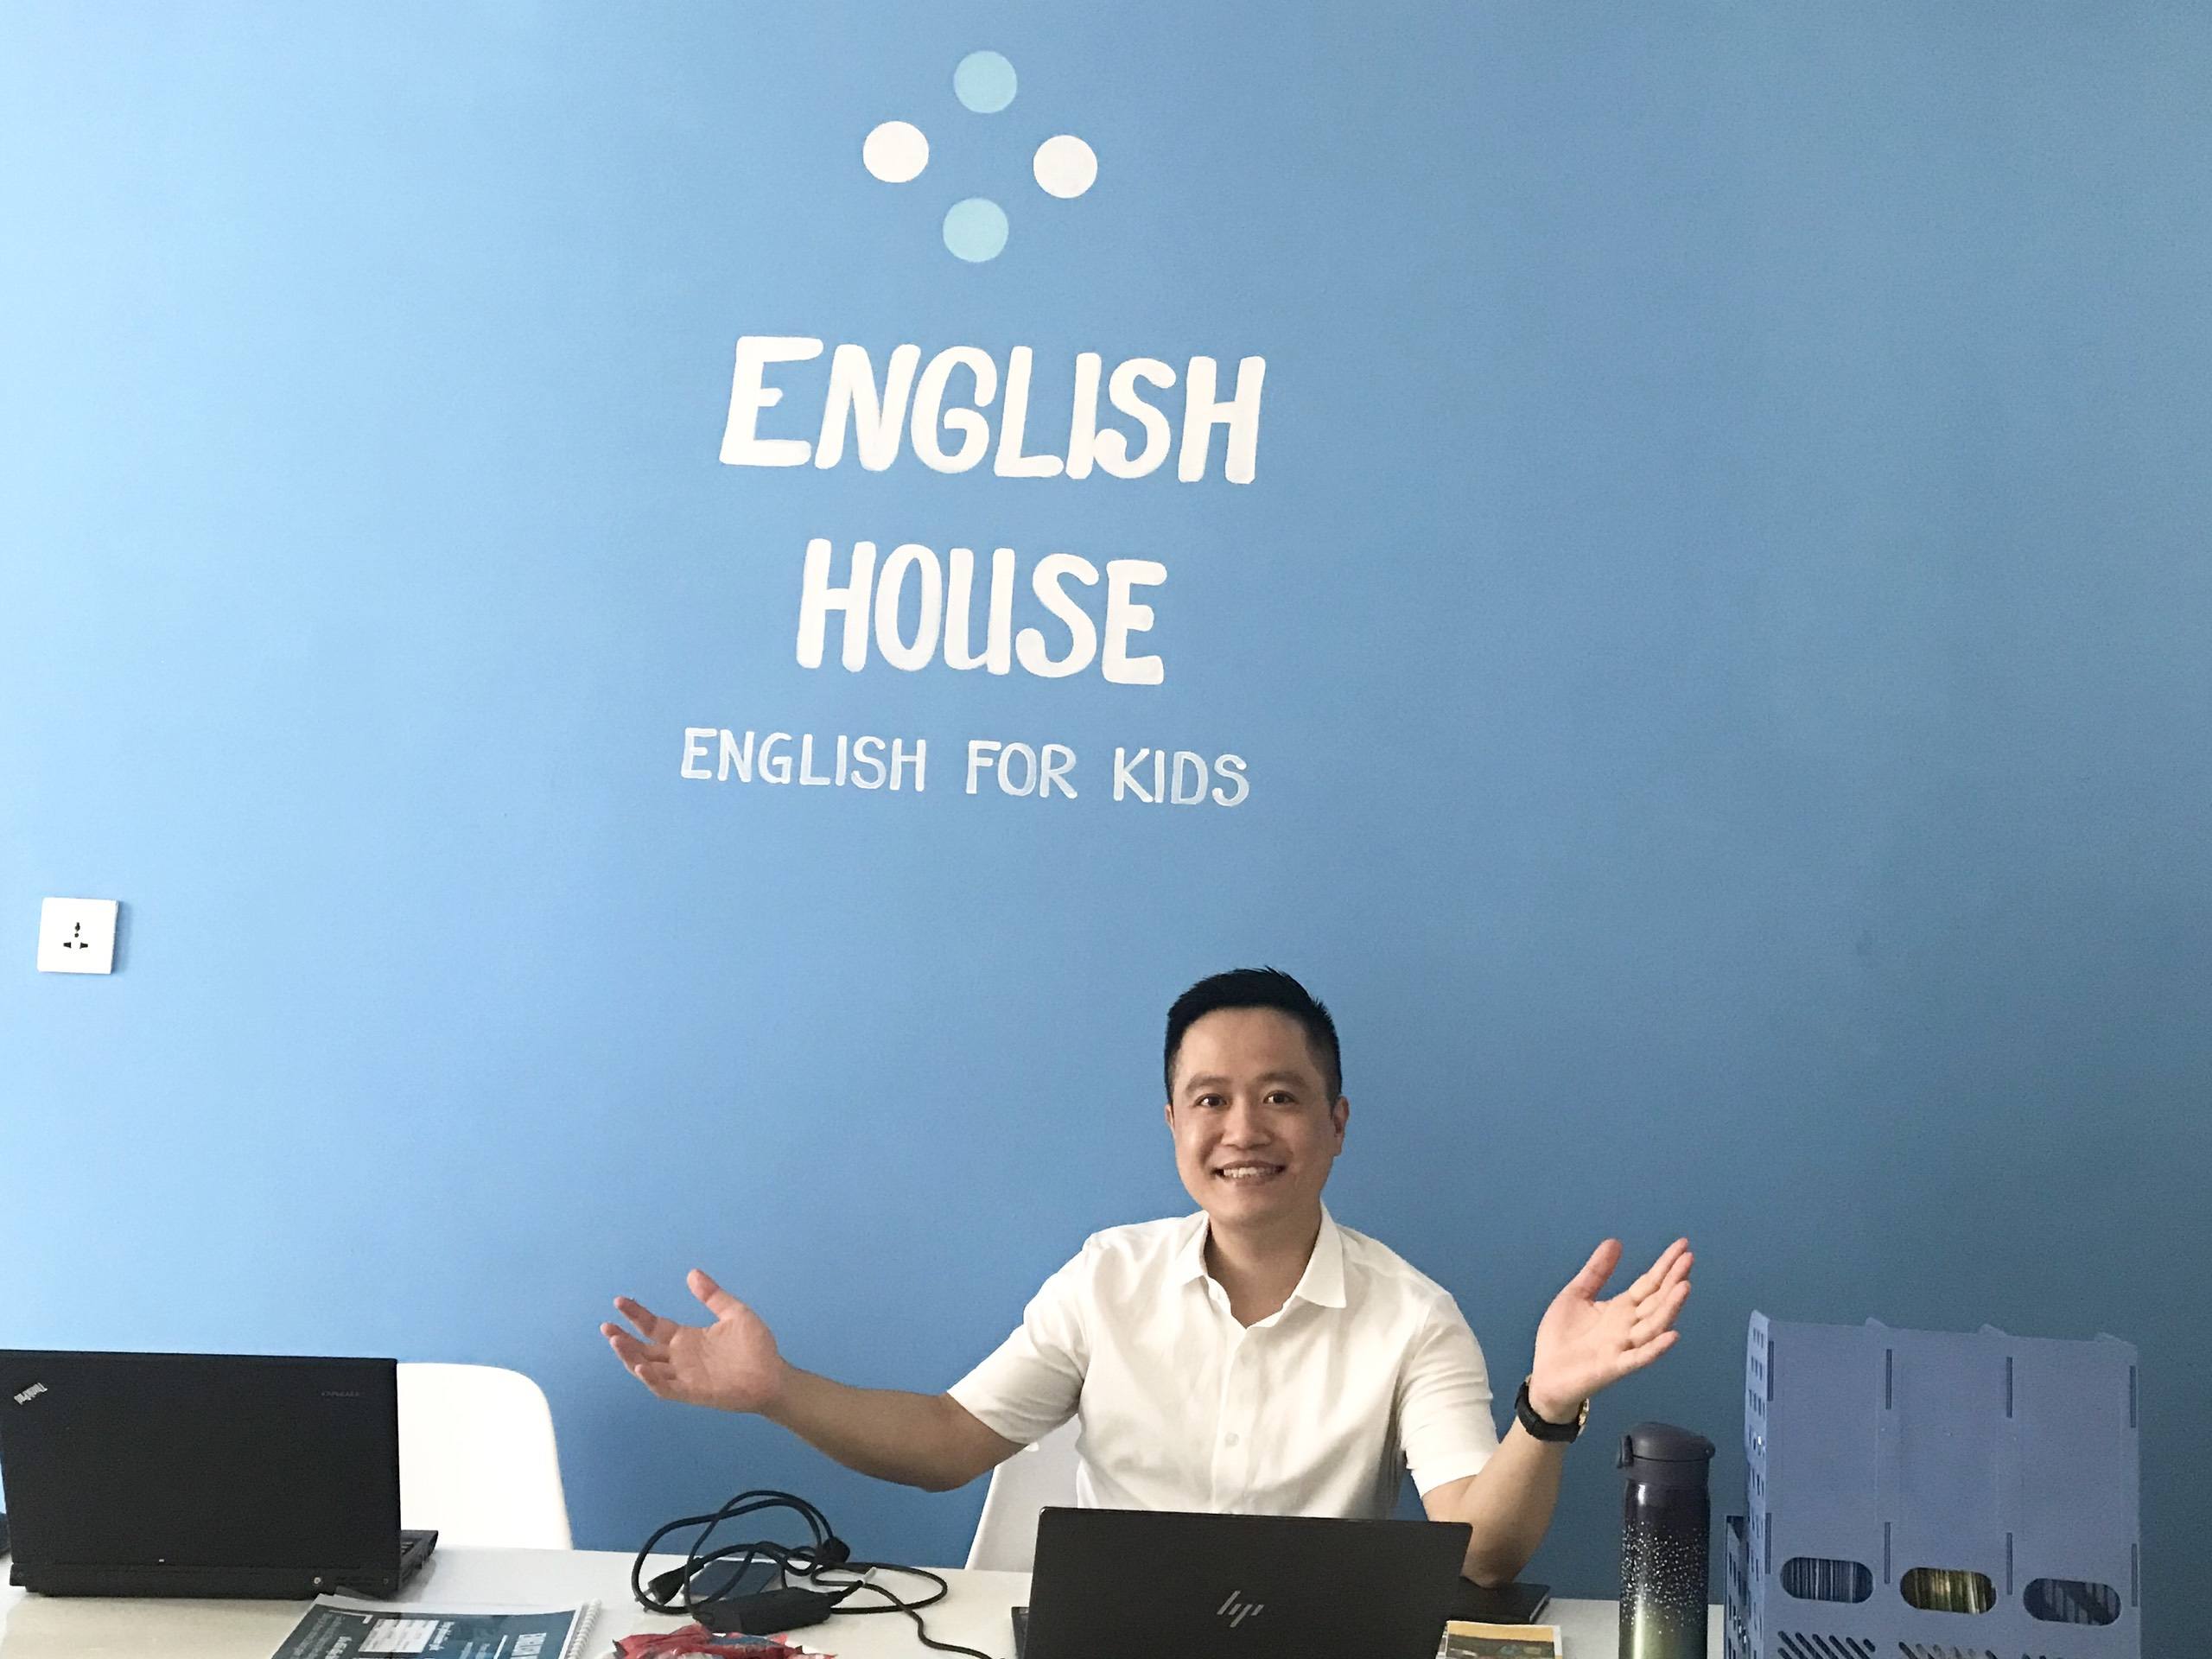 Peter and Jay say welcome to All Friends in English House Ocean Park